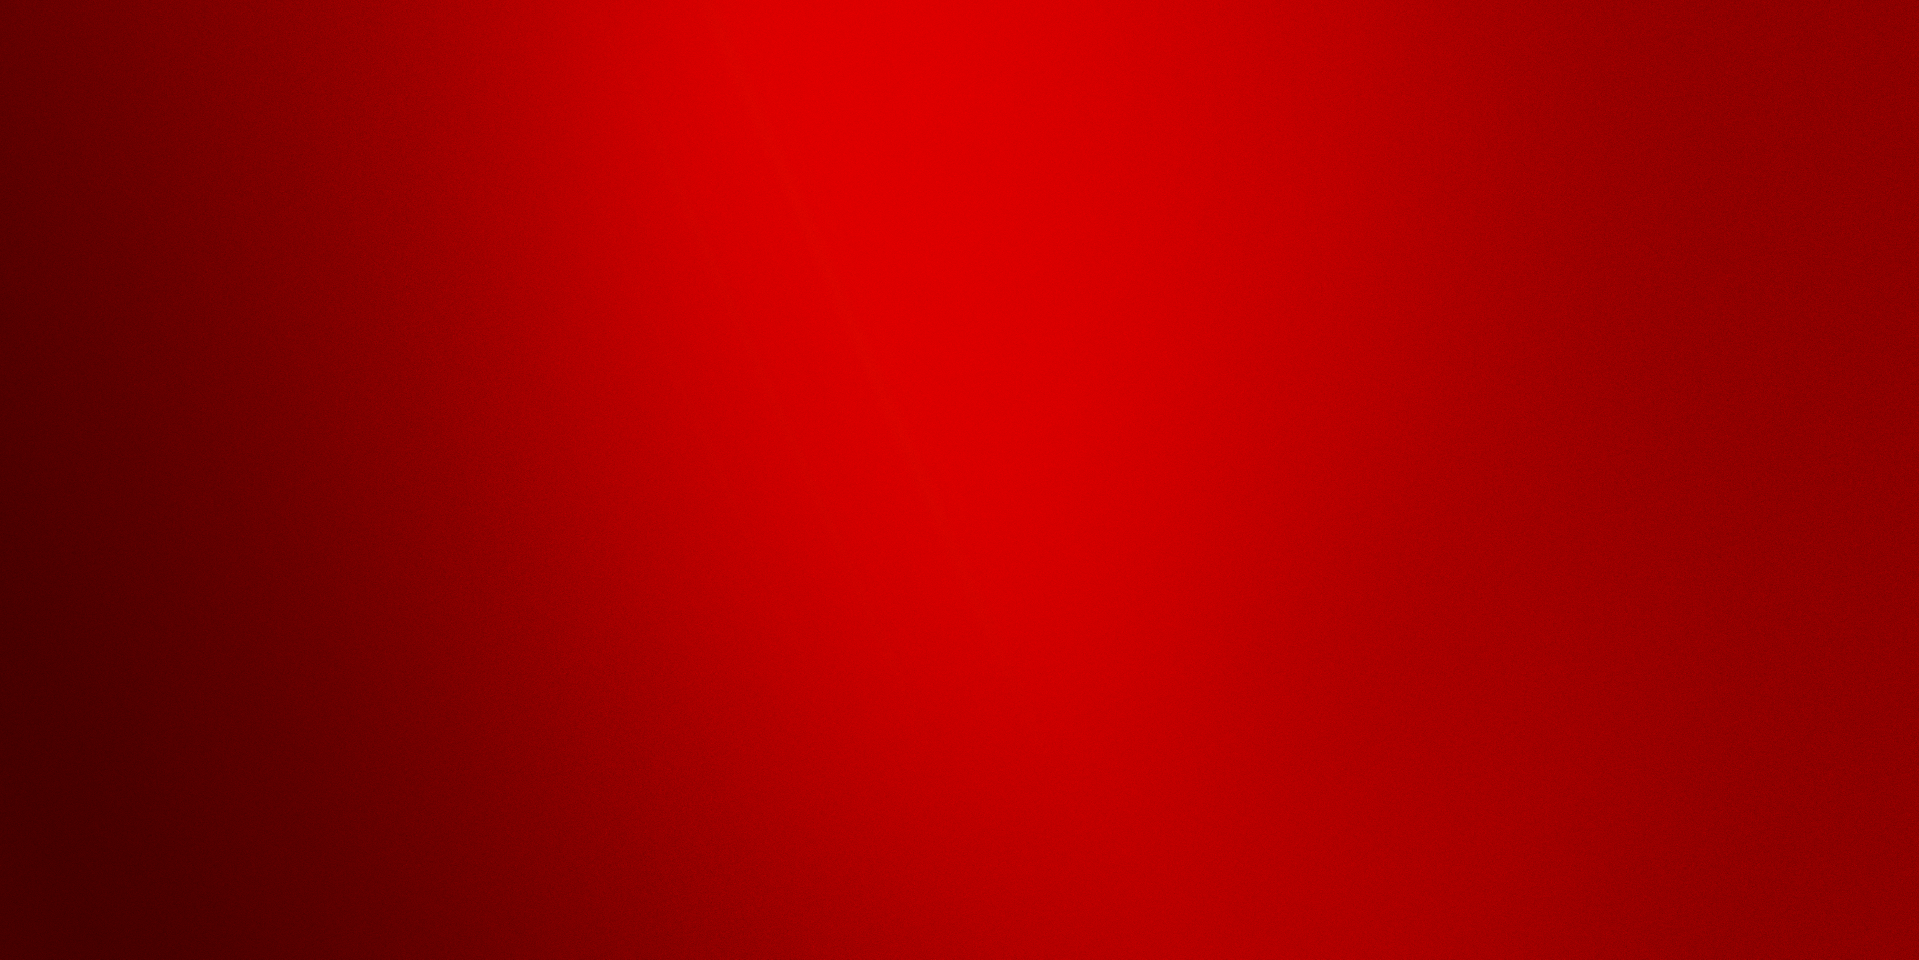 banners-07